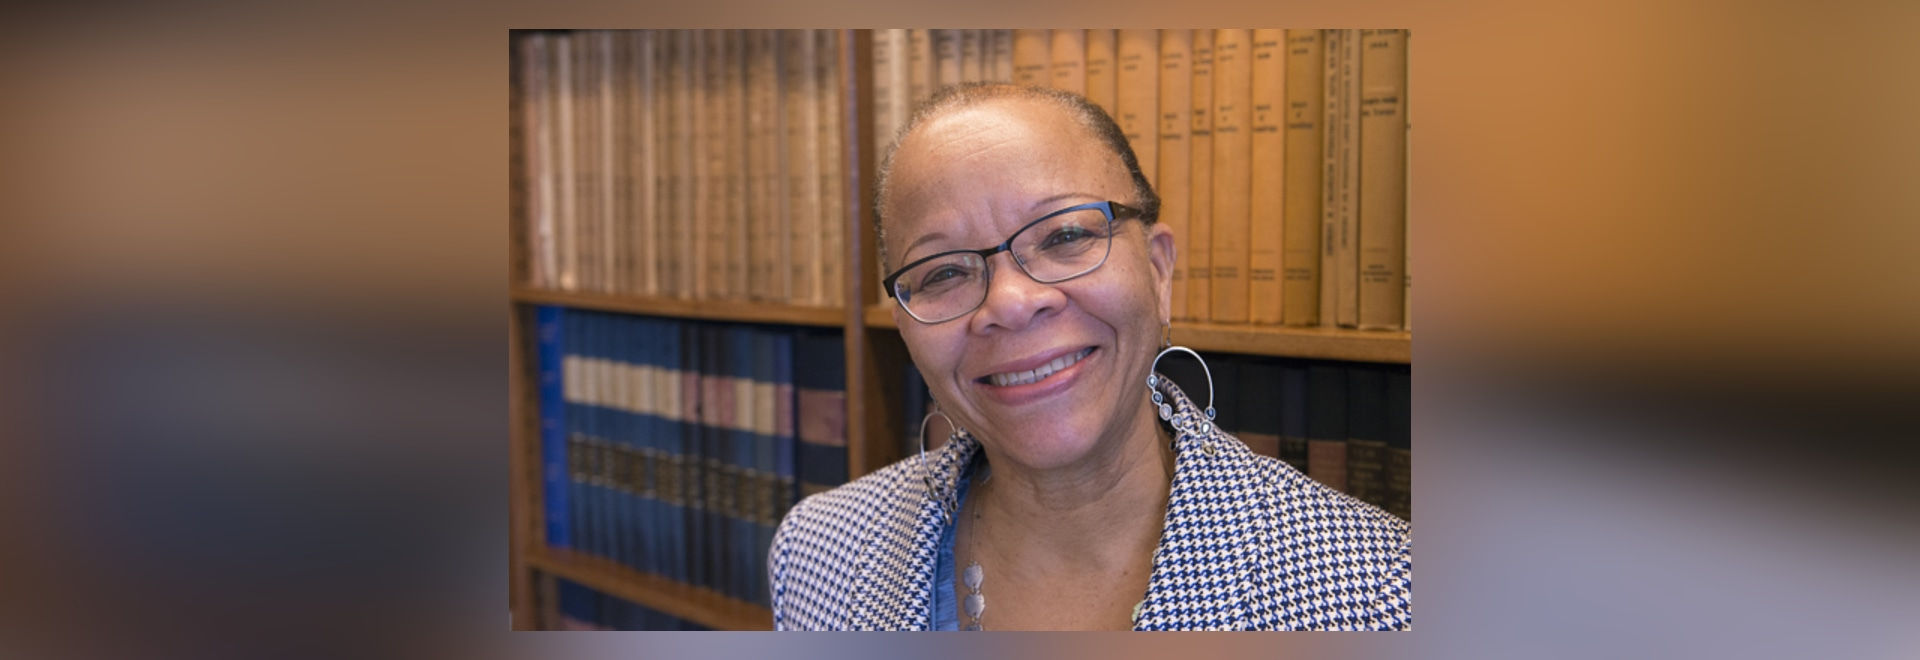 Dr. Cleopatra Doumbia-Henry has been appointed President of the World Maritime University.